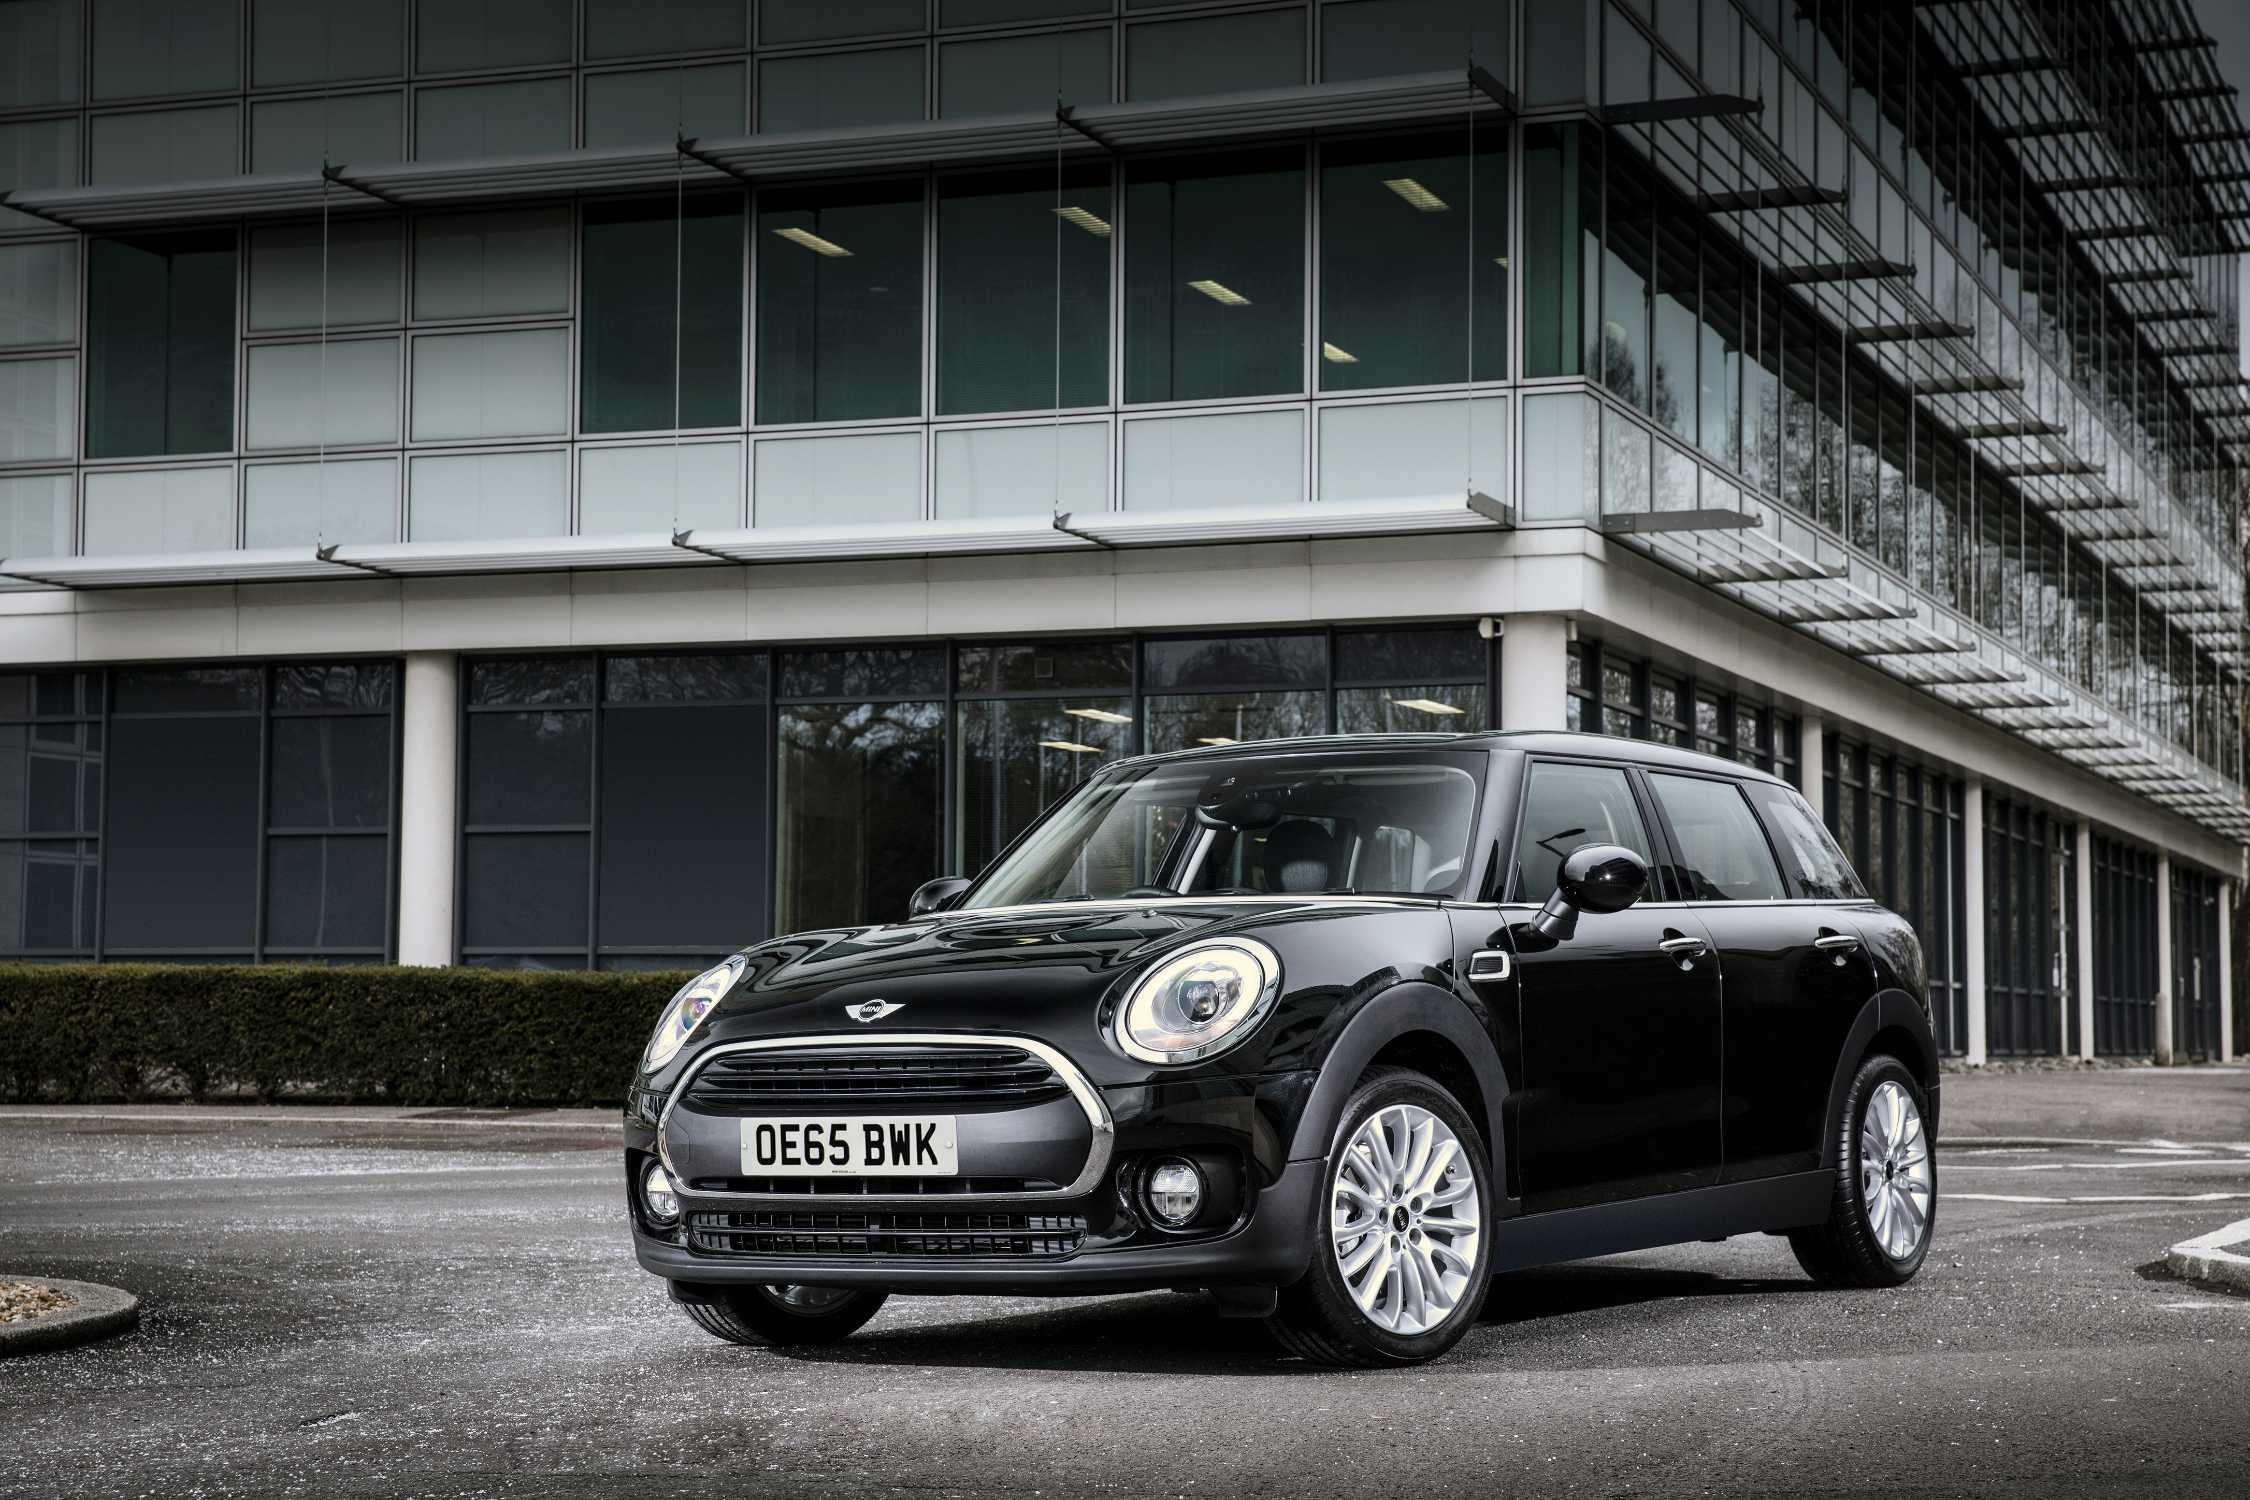 Resale Value Giants Mini Is The Leader In Two Vehicle Categories